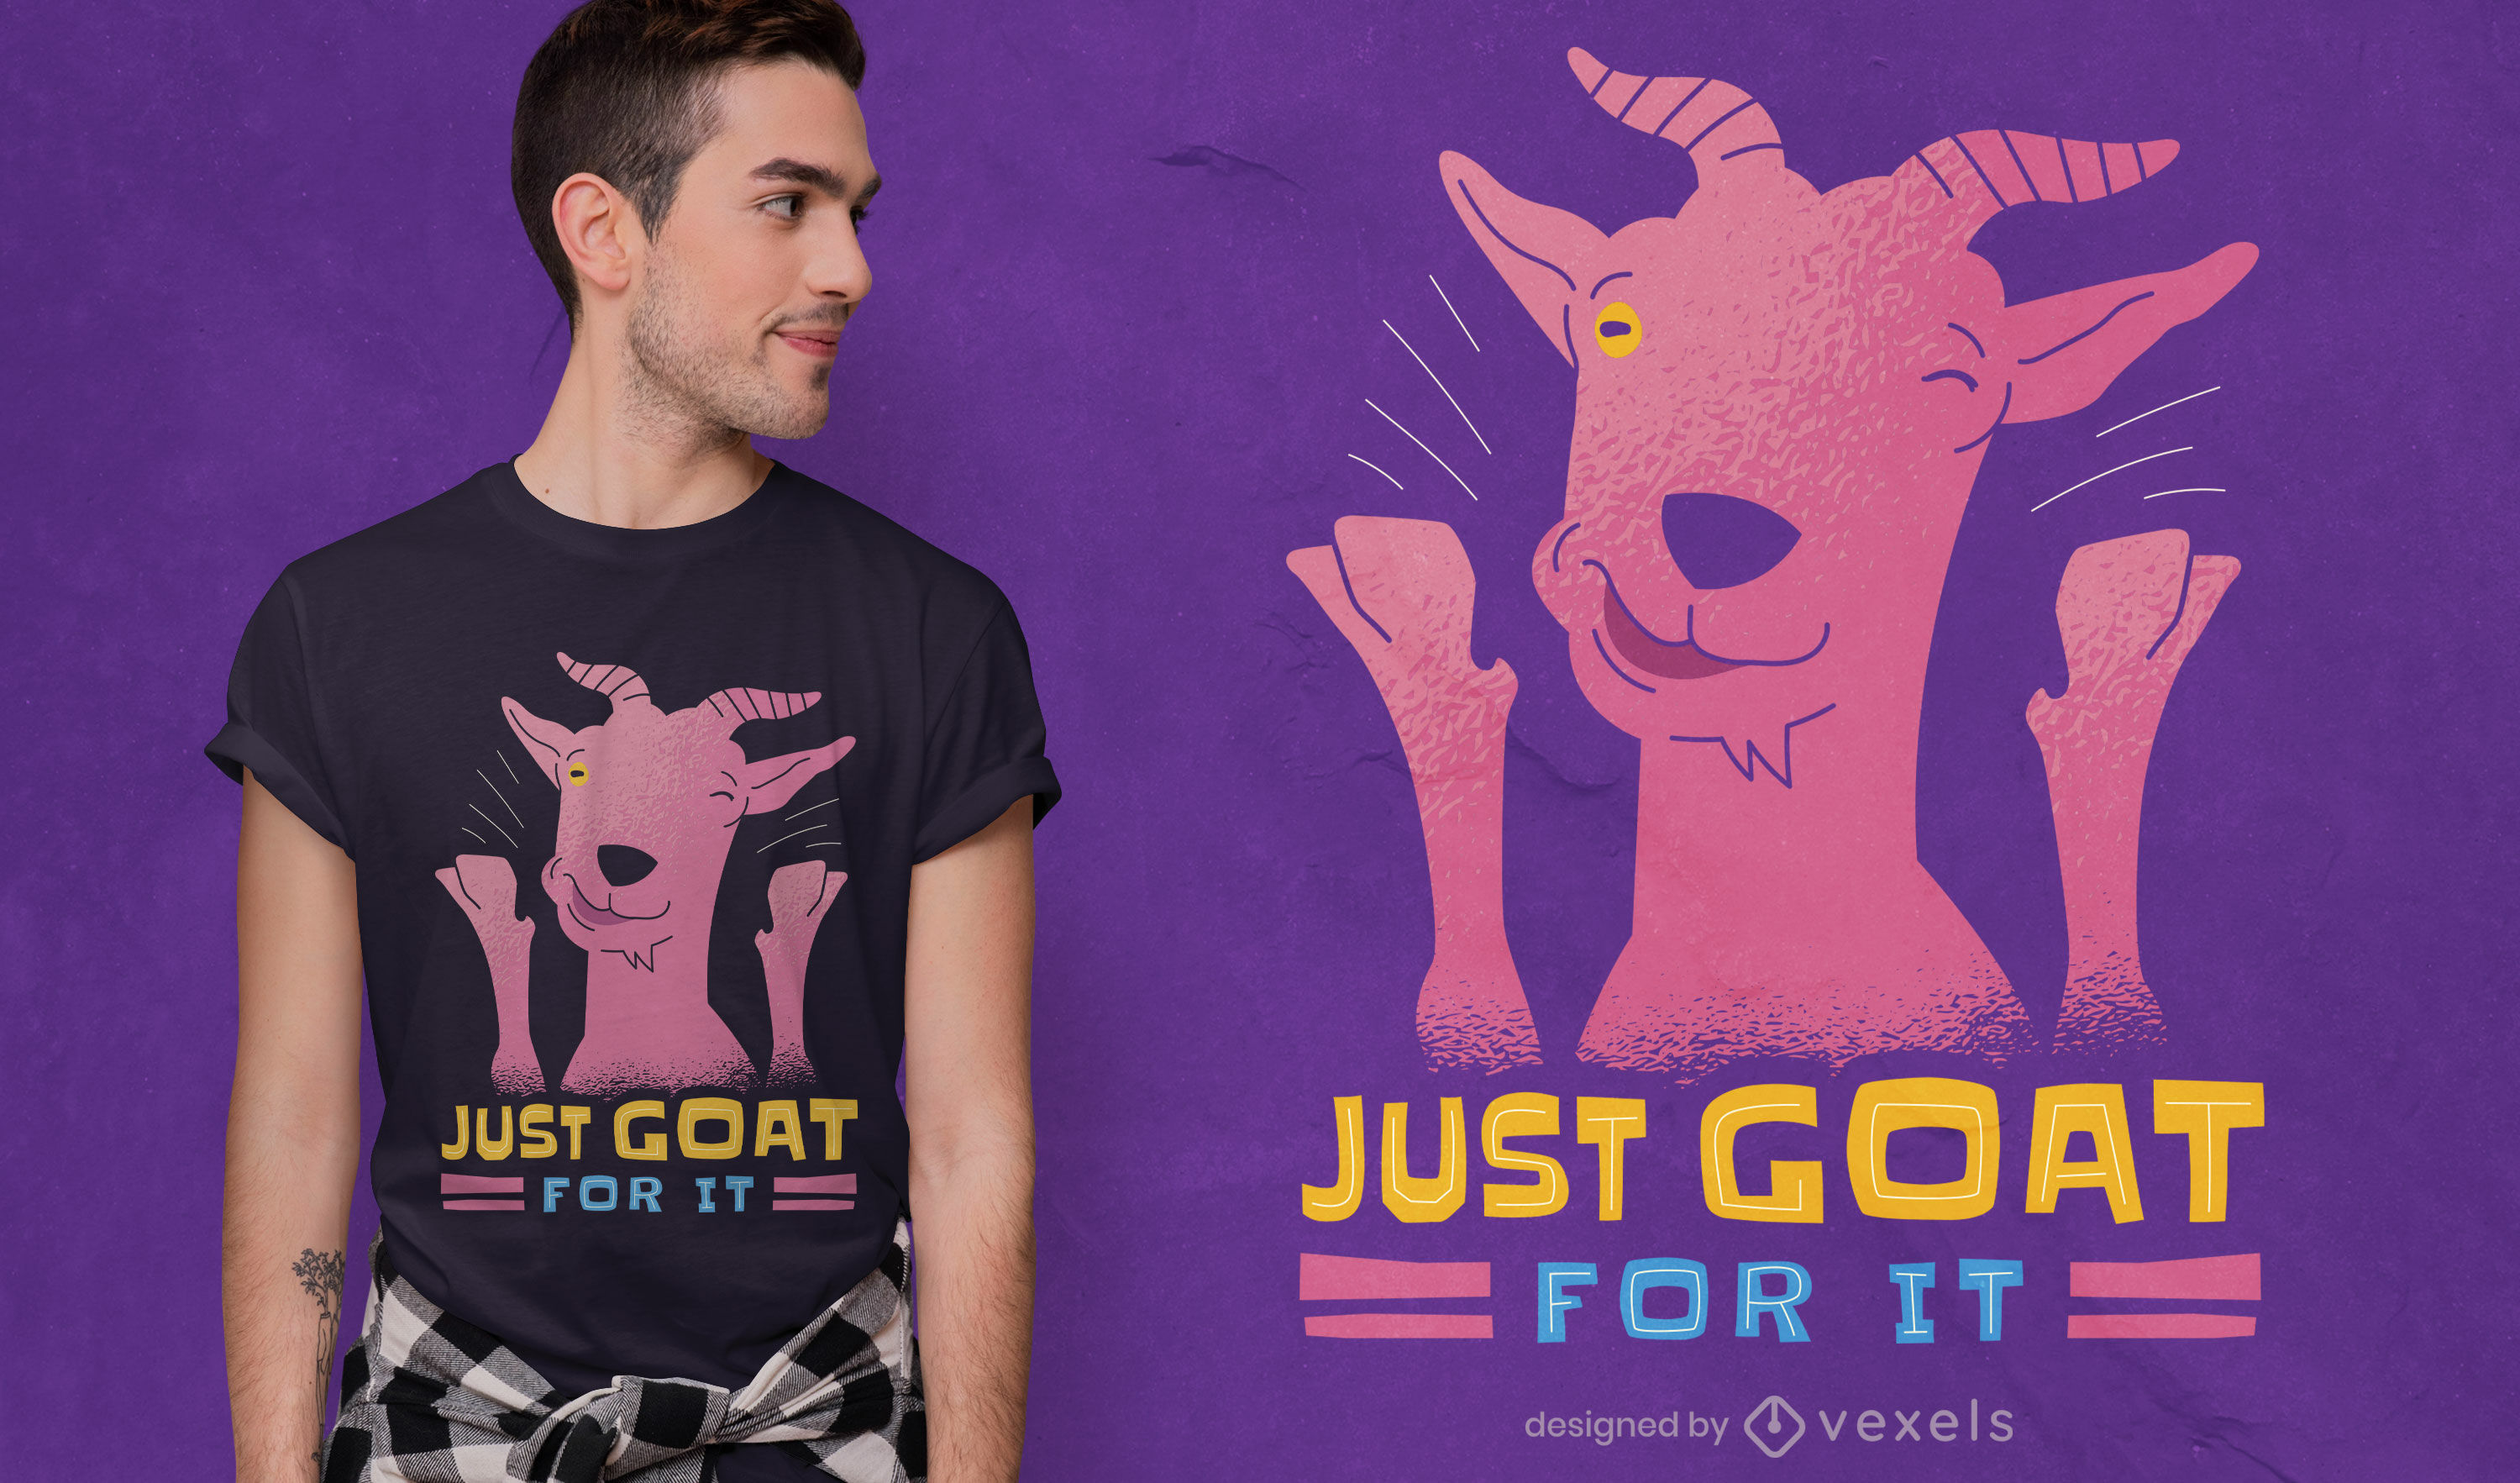 Just goat for it t-shirt design